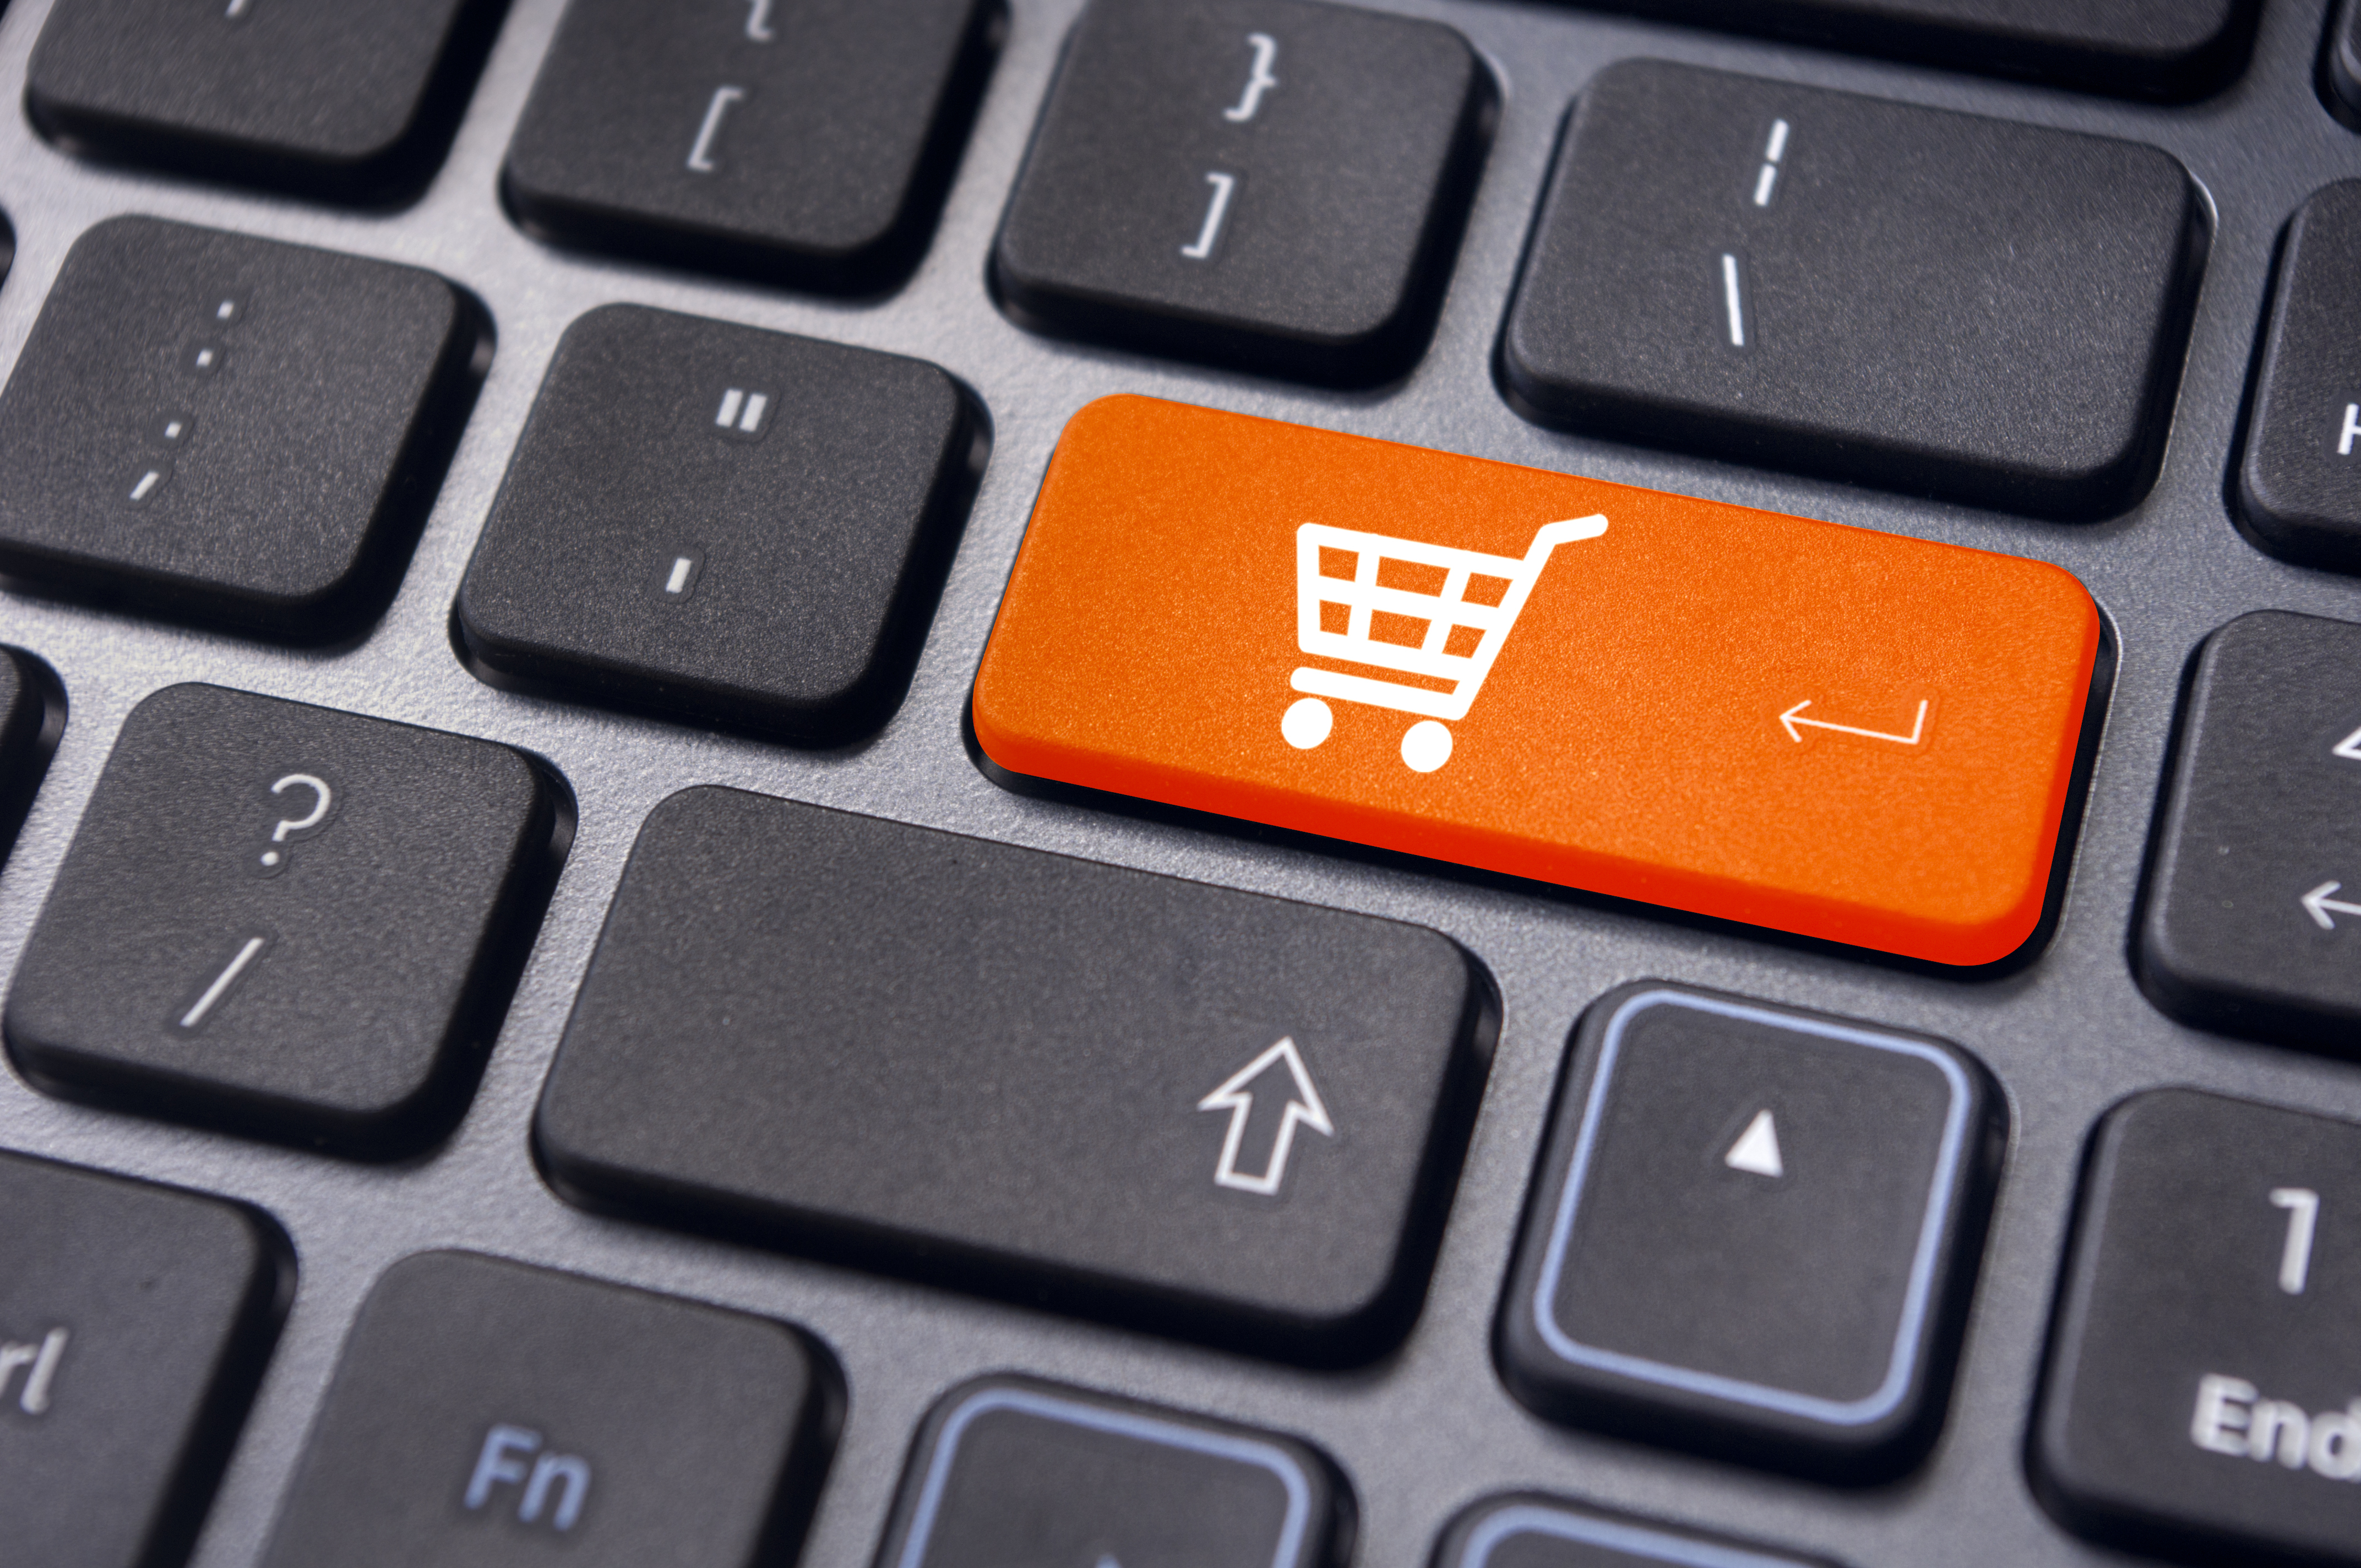 Romania, Bulgaria have lowest shares of e-shoppers in EU